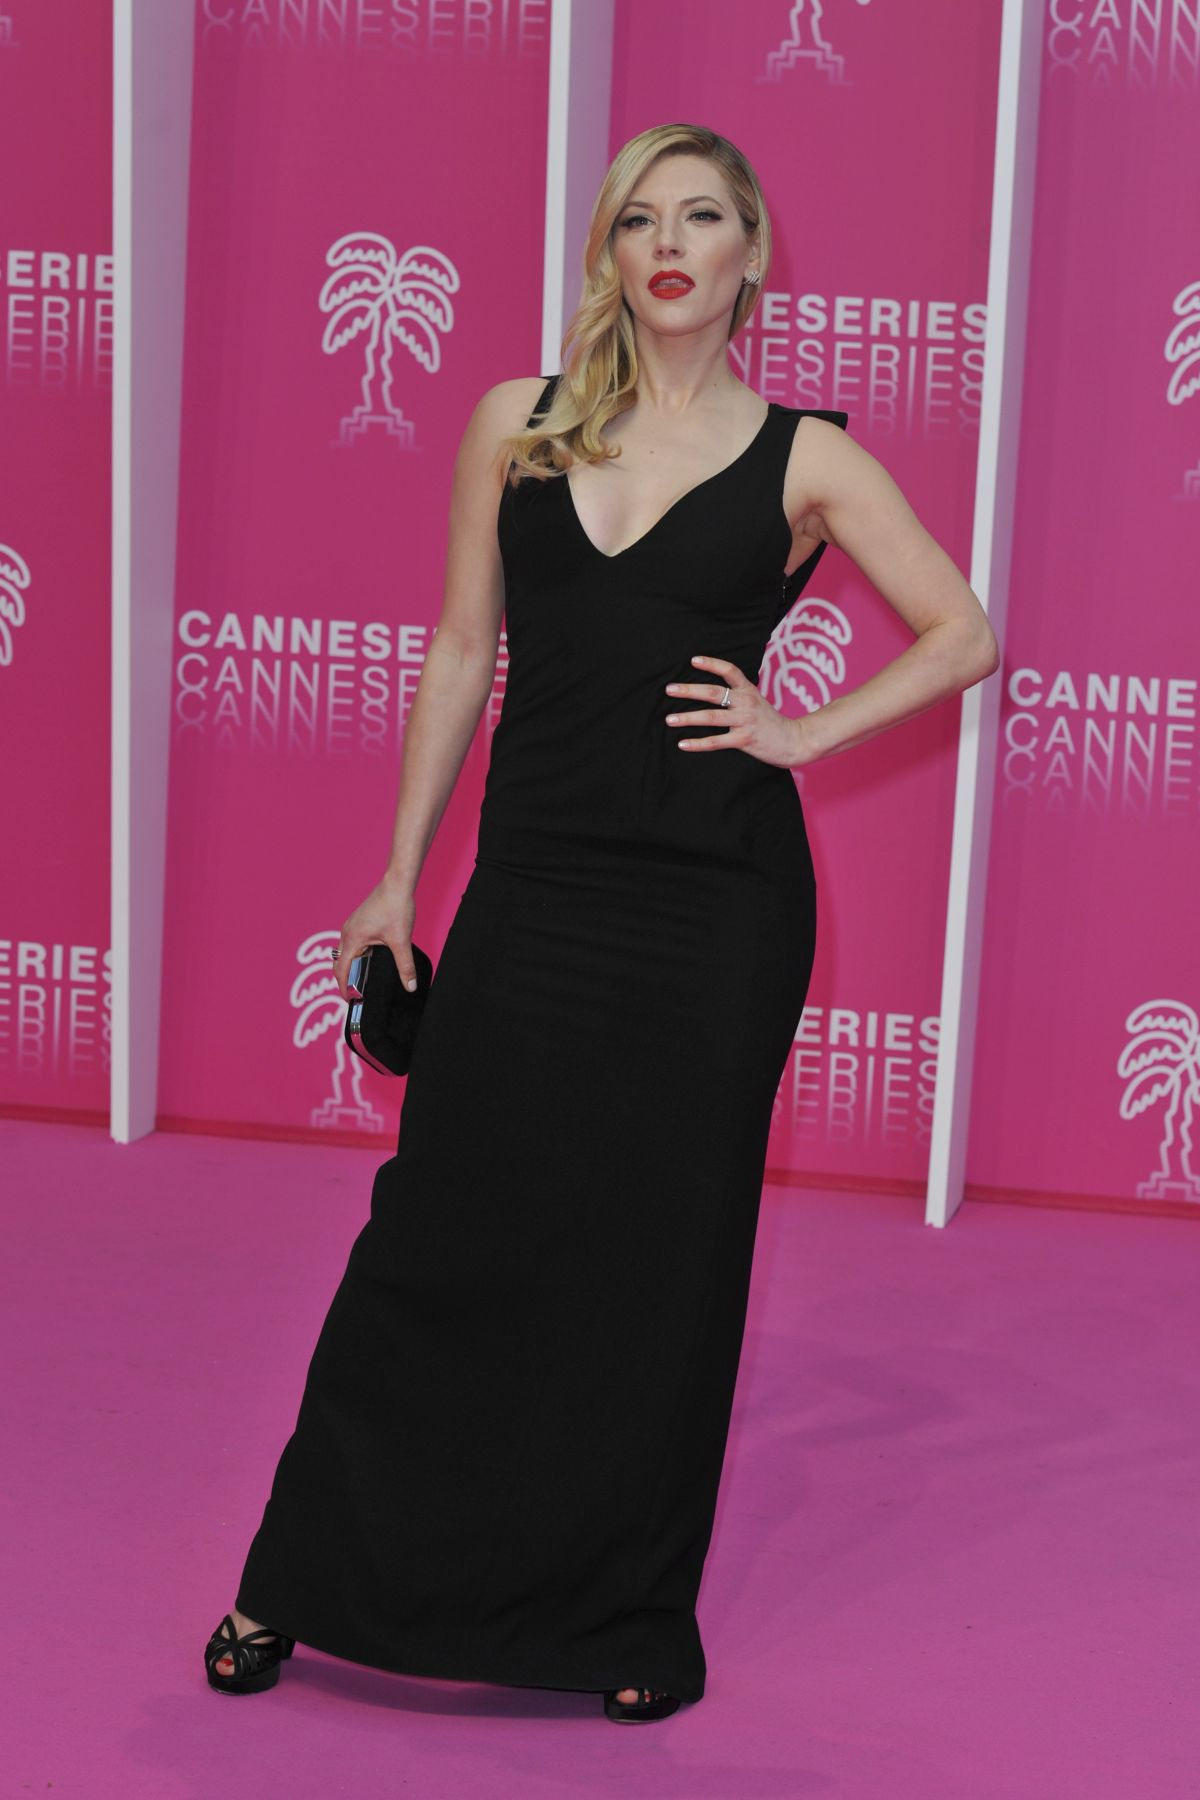 Katheryn Winnick At The Rook Premiere At Cannes Series